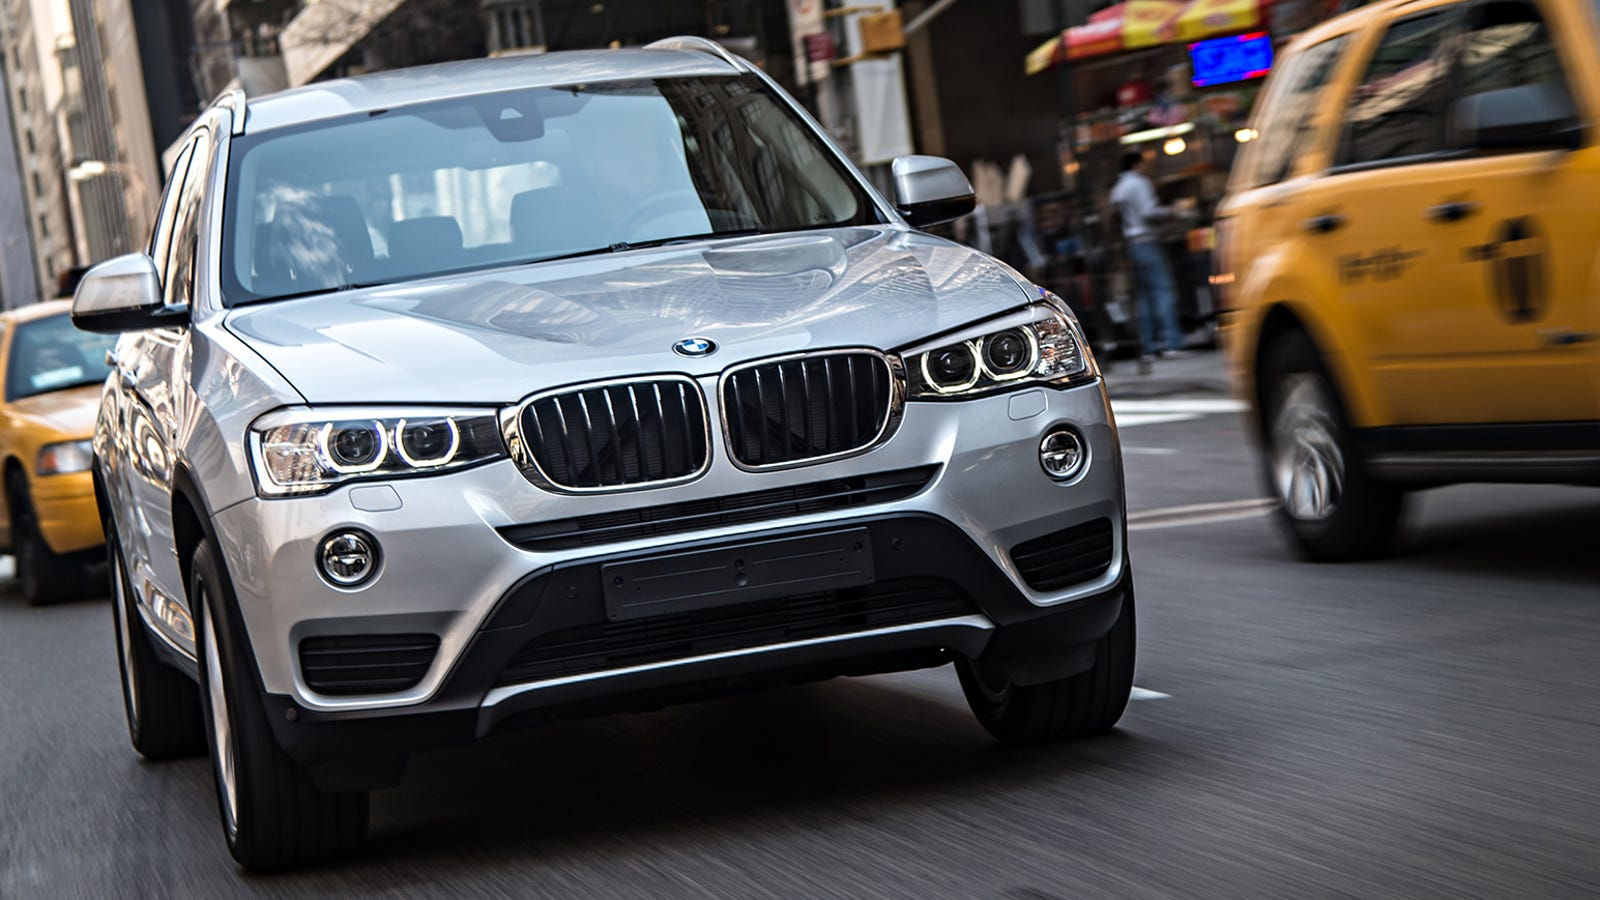 german magazine claims the bmw x3 diesel also violates european emissions limits updated. Black Bedroom Furniture Sets. Home Design Ideas